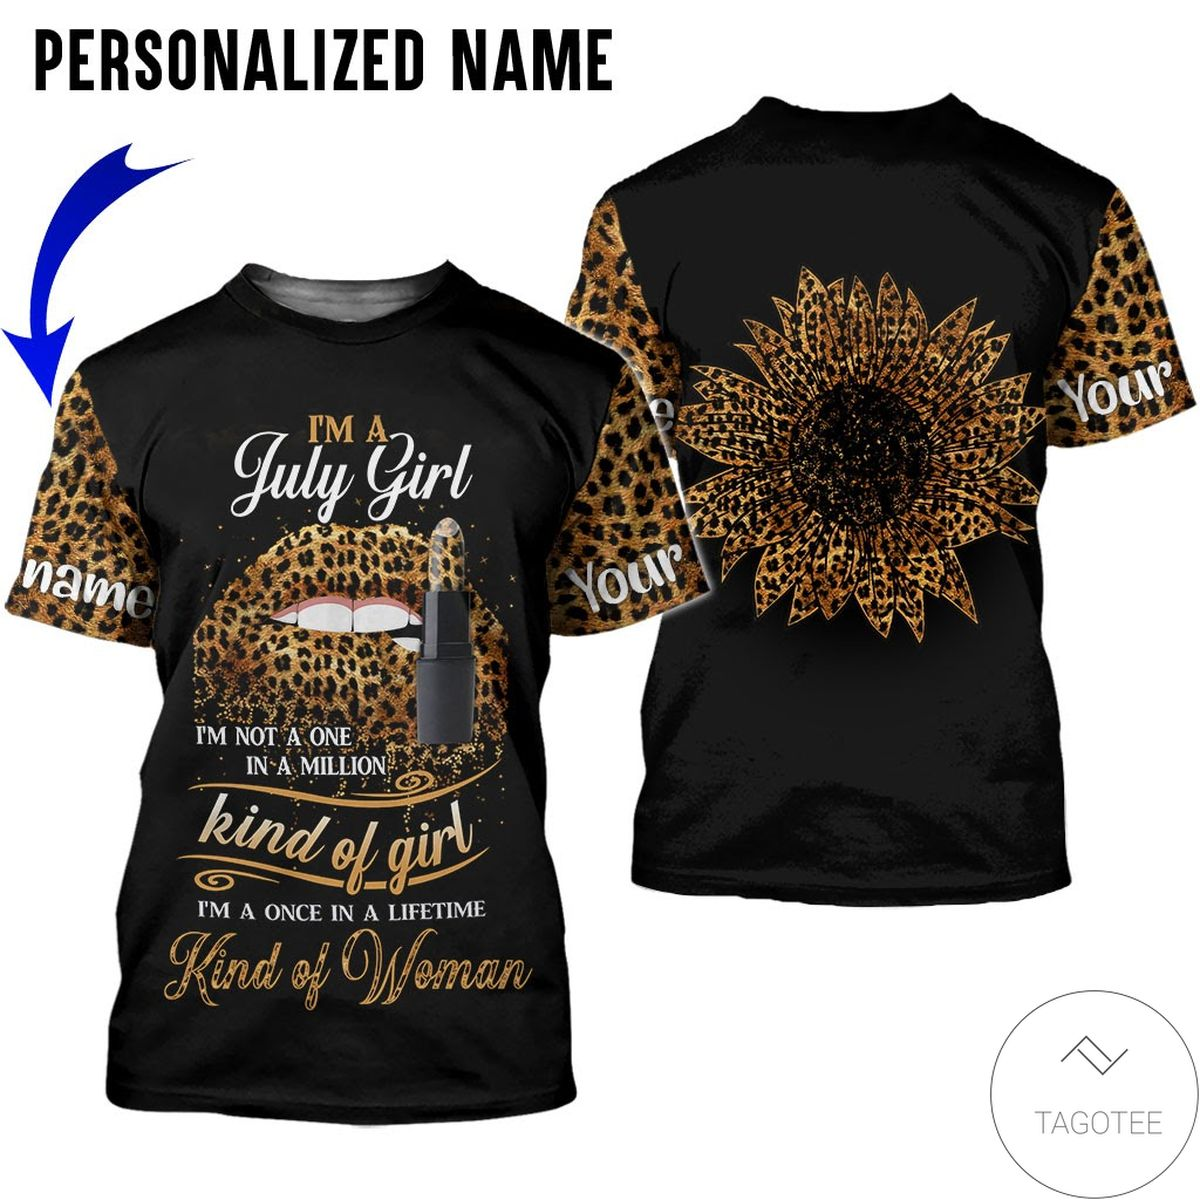 Personalized Name I'm July Girl I'm Not A One In A Million Kind Of Girl All Over Print Hoodiex